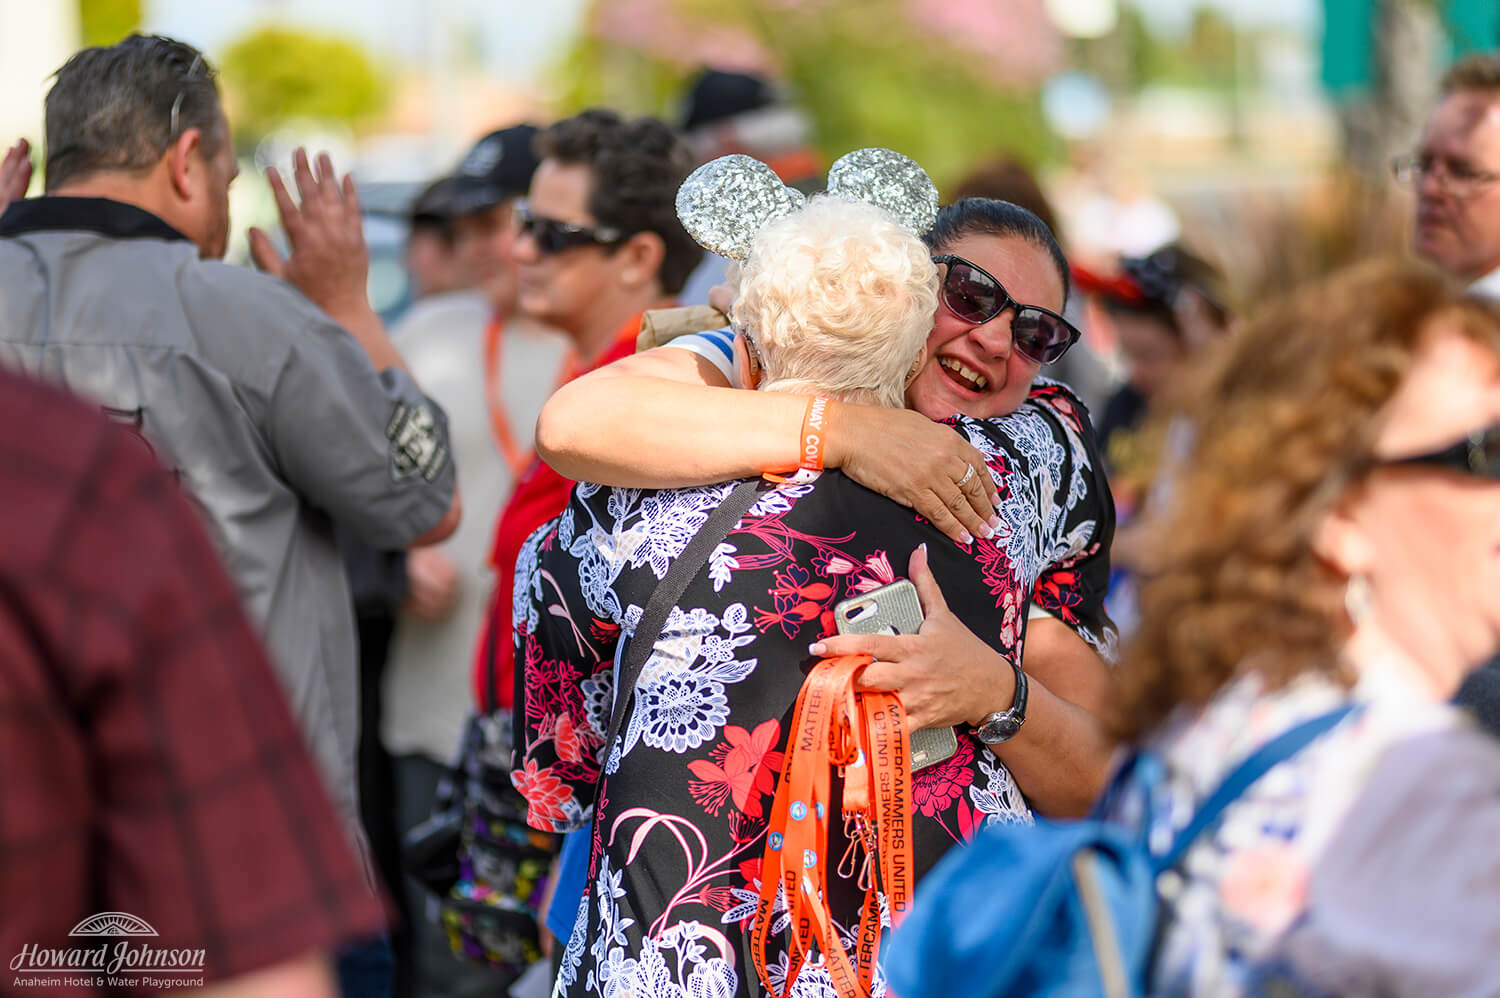 two women who are a part of the Mattercammers United embrace in a hug in the middle of a crowd of people